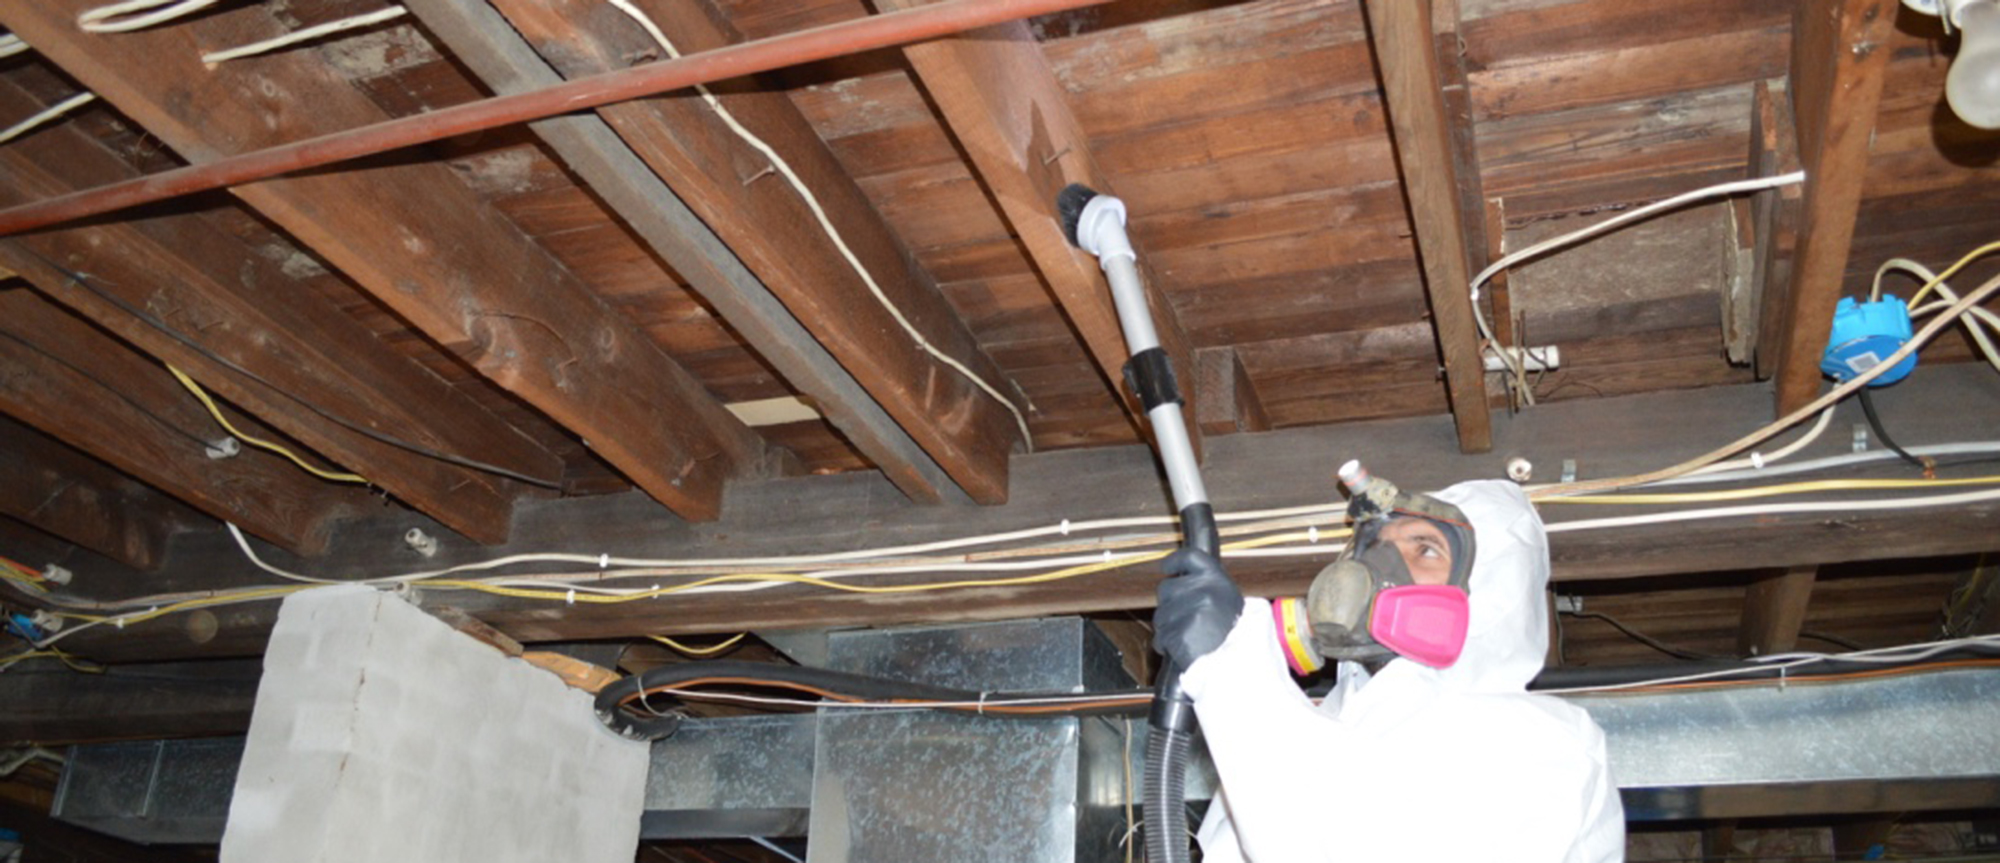 removing mold on floor joists